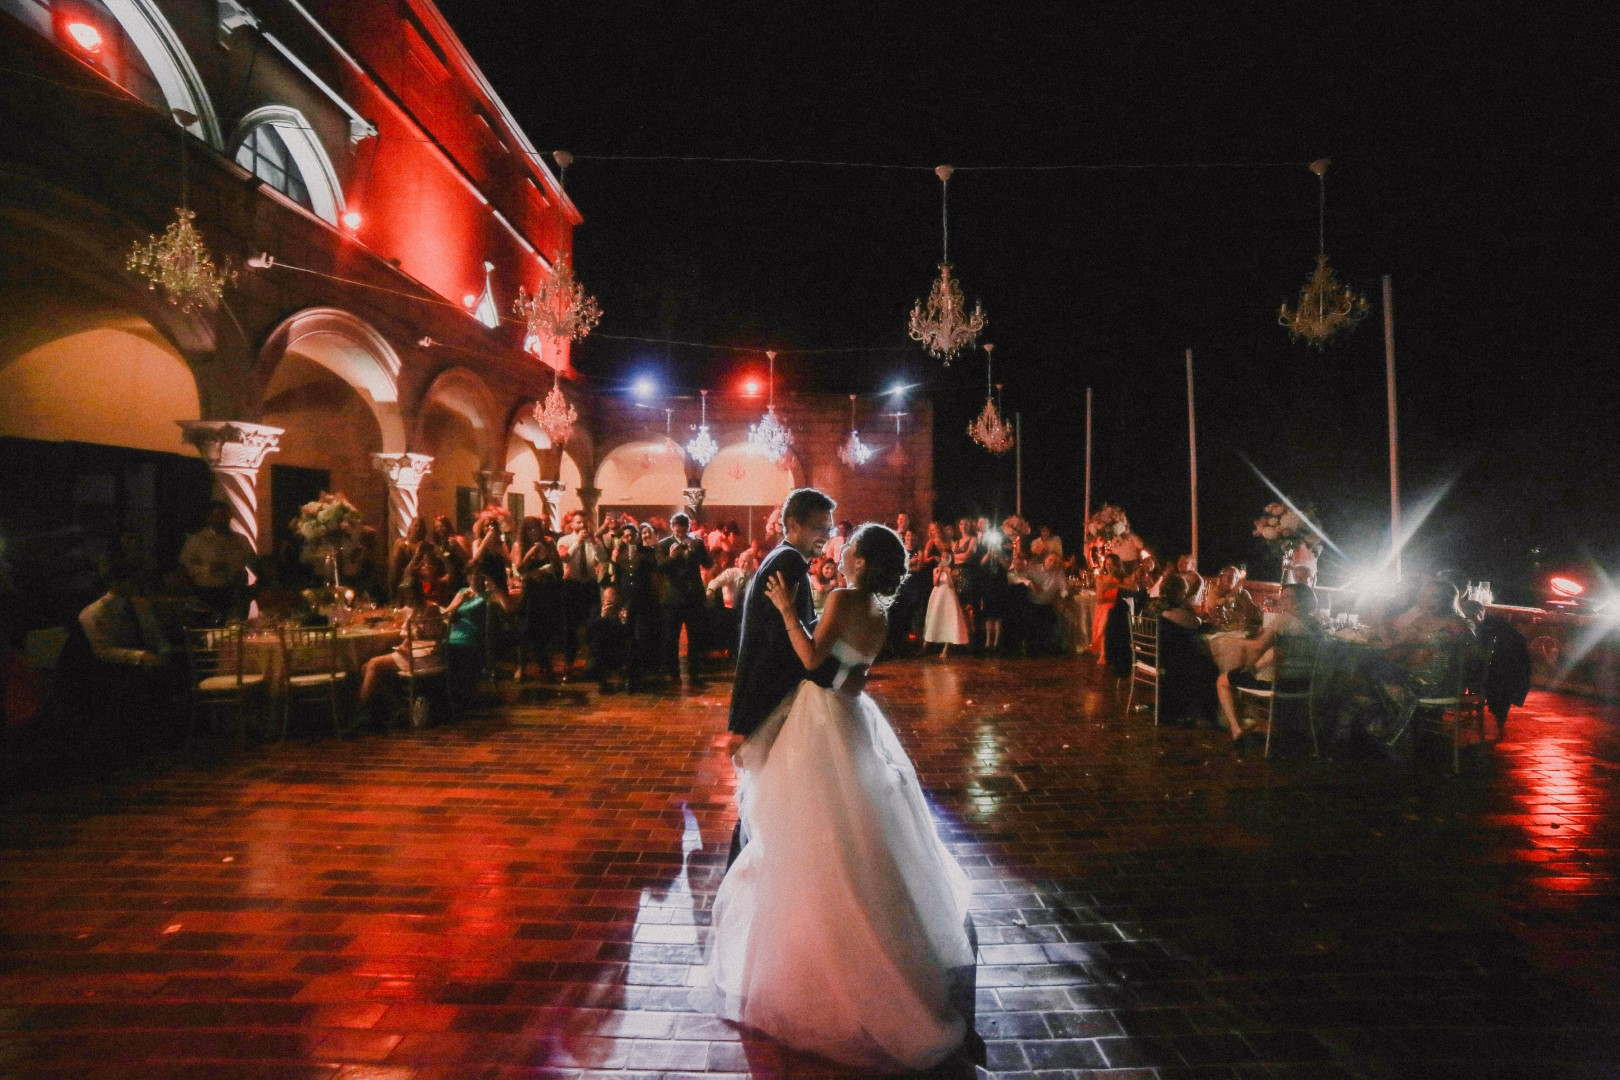 This photo shows the wedding couple dancing their first dance. The lighting is beautiful, mostly red and blue. The guests are watching and filming them.